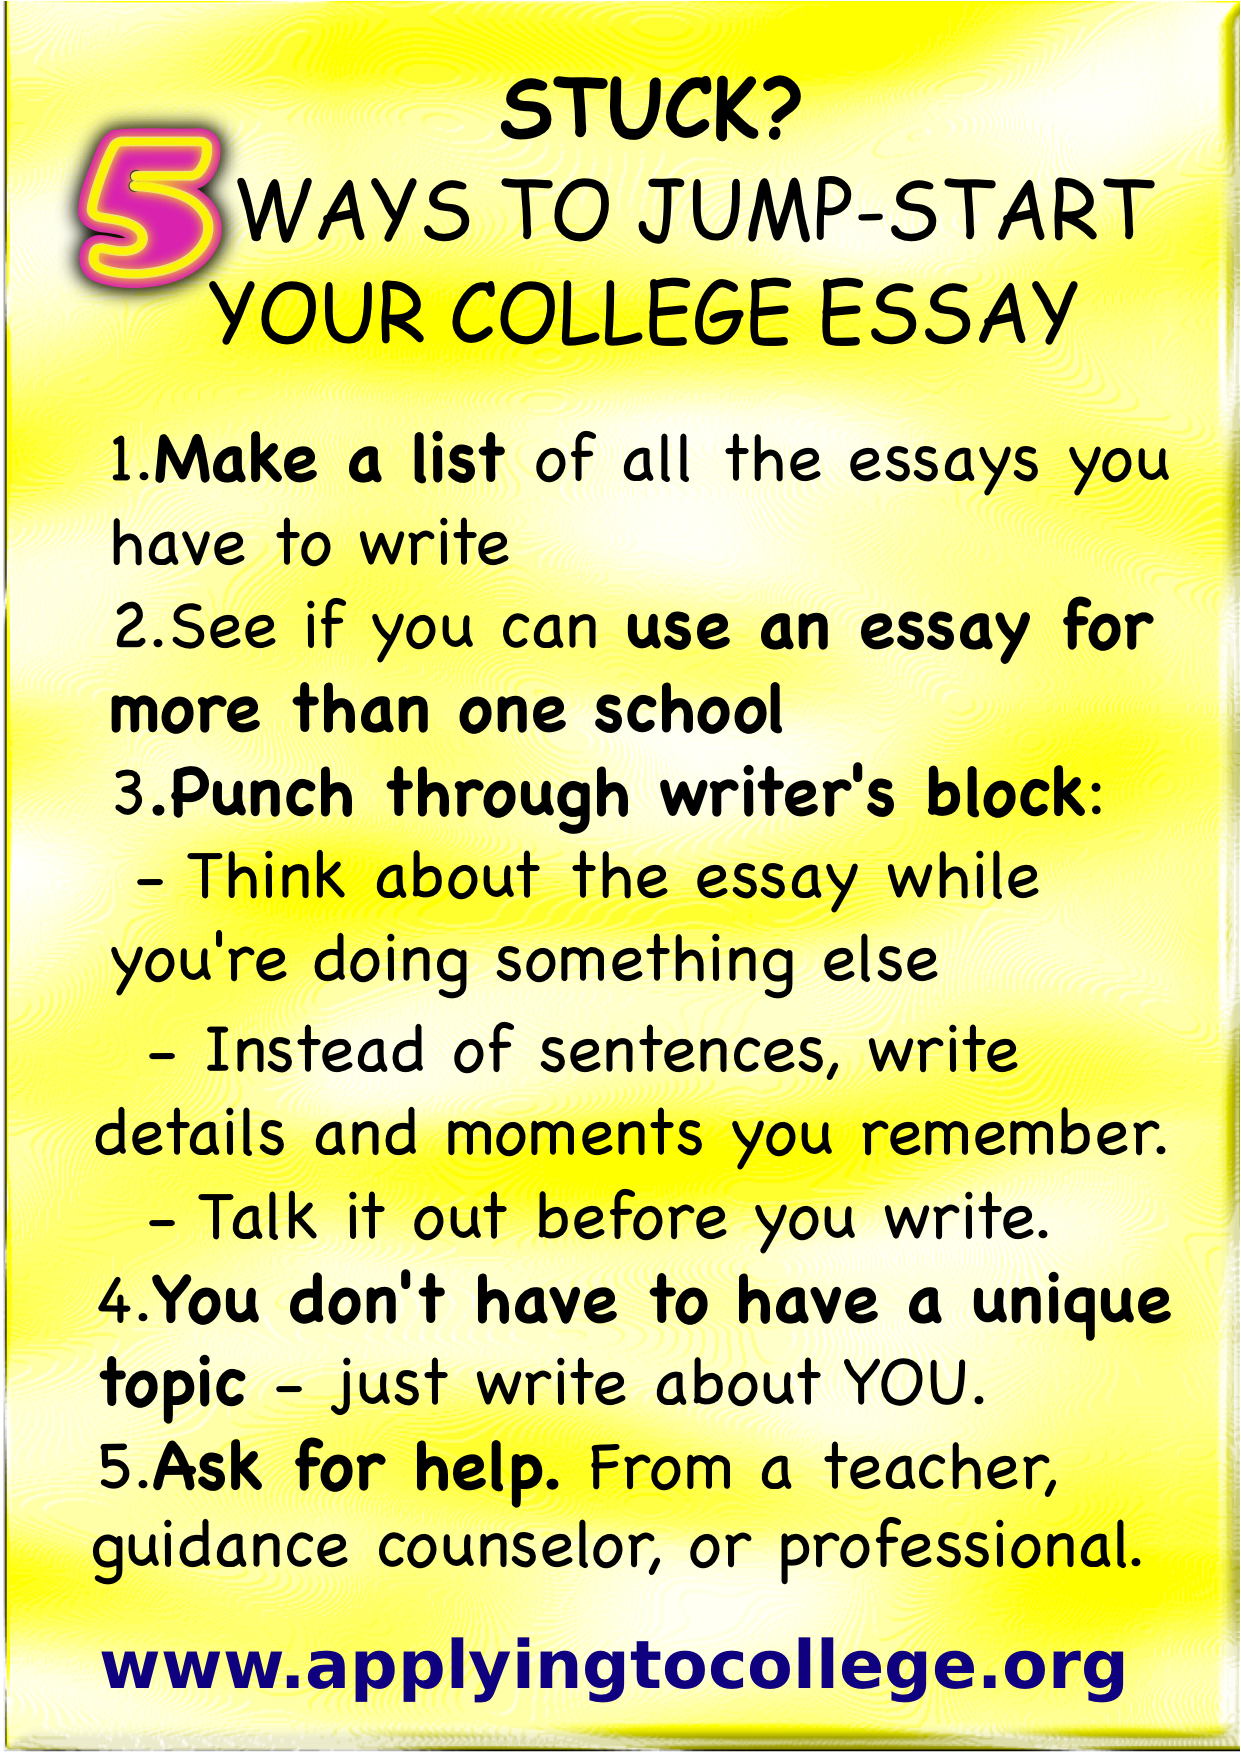 stuck 5 tips to jump start your college essay applying to college 5 ways to reduce college application essay stress